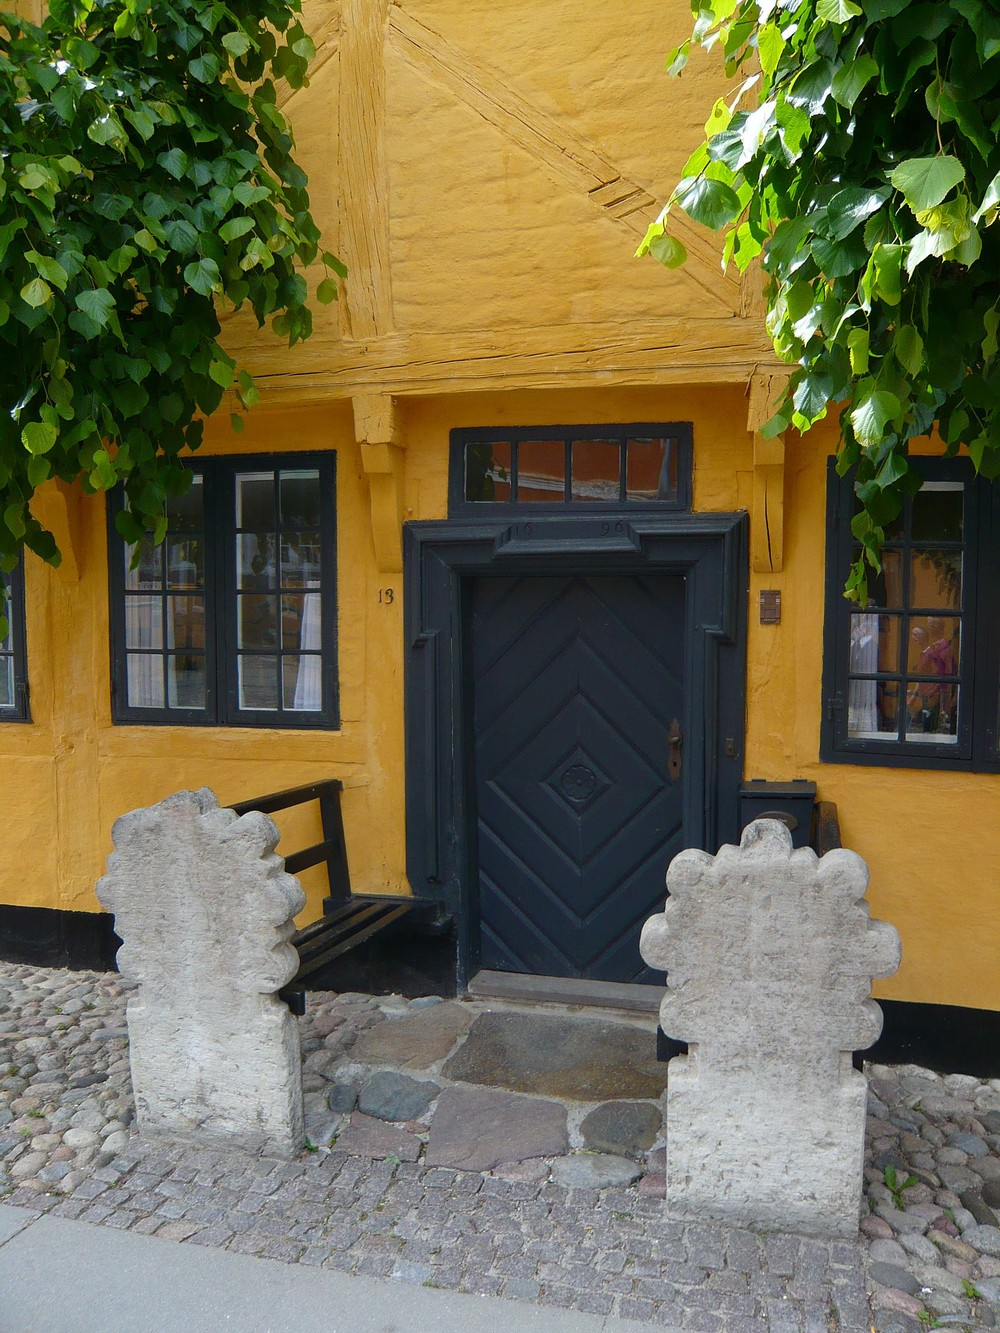 Striking colour in Køge - note the benches with ornate stone ends that flank the doorway